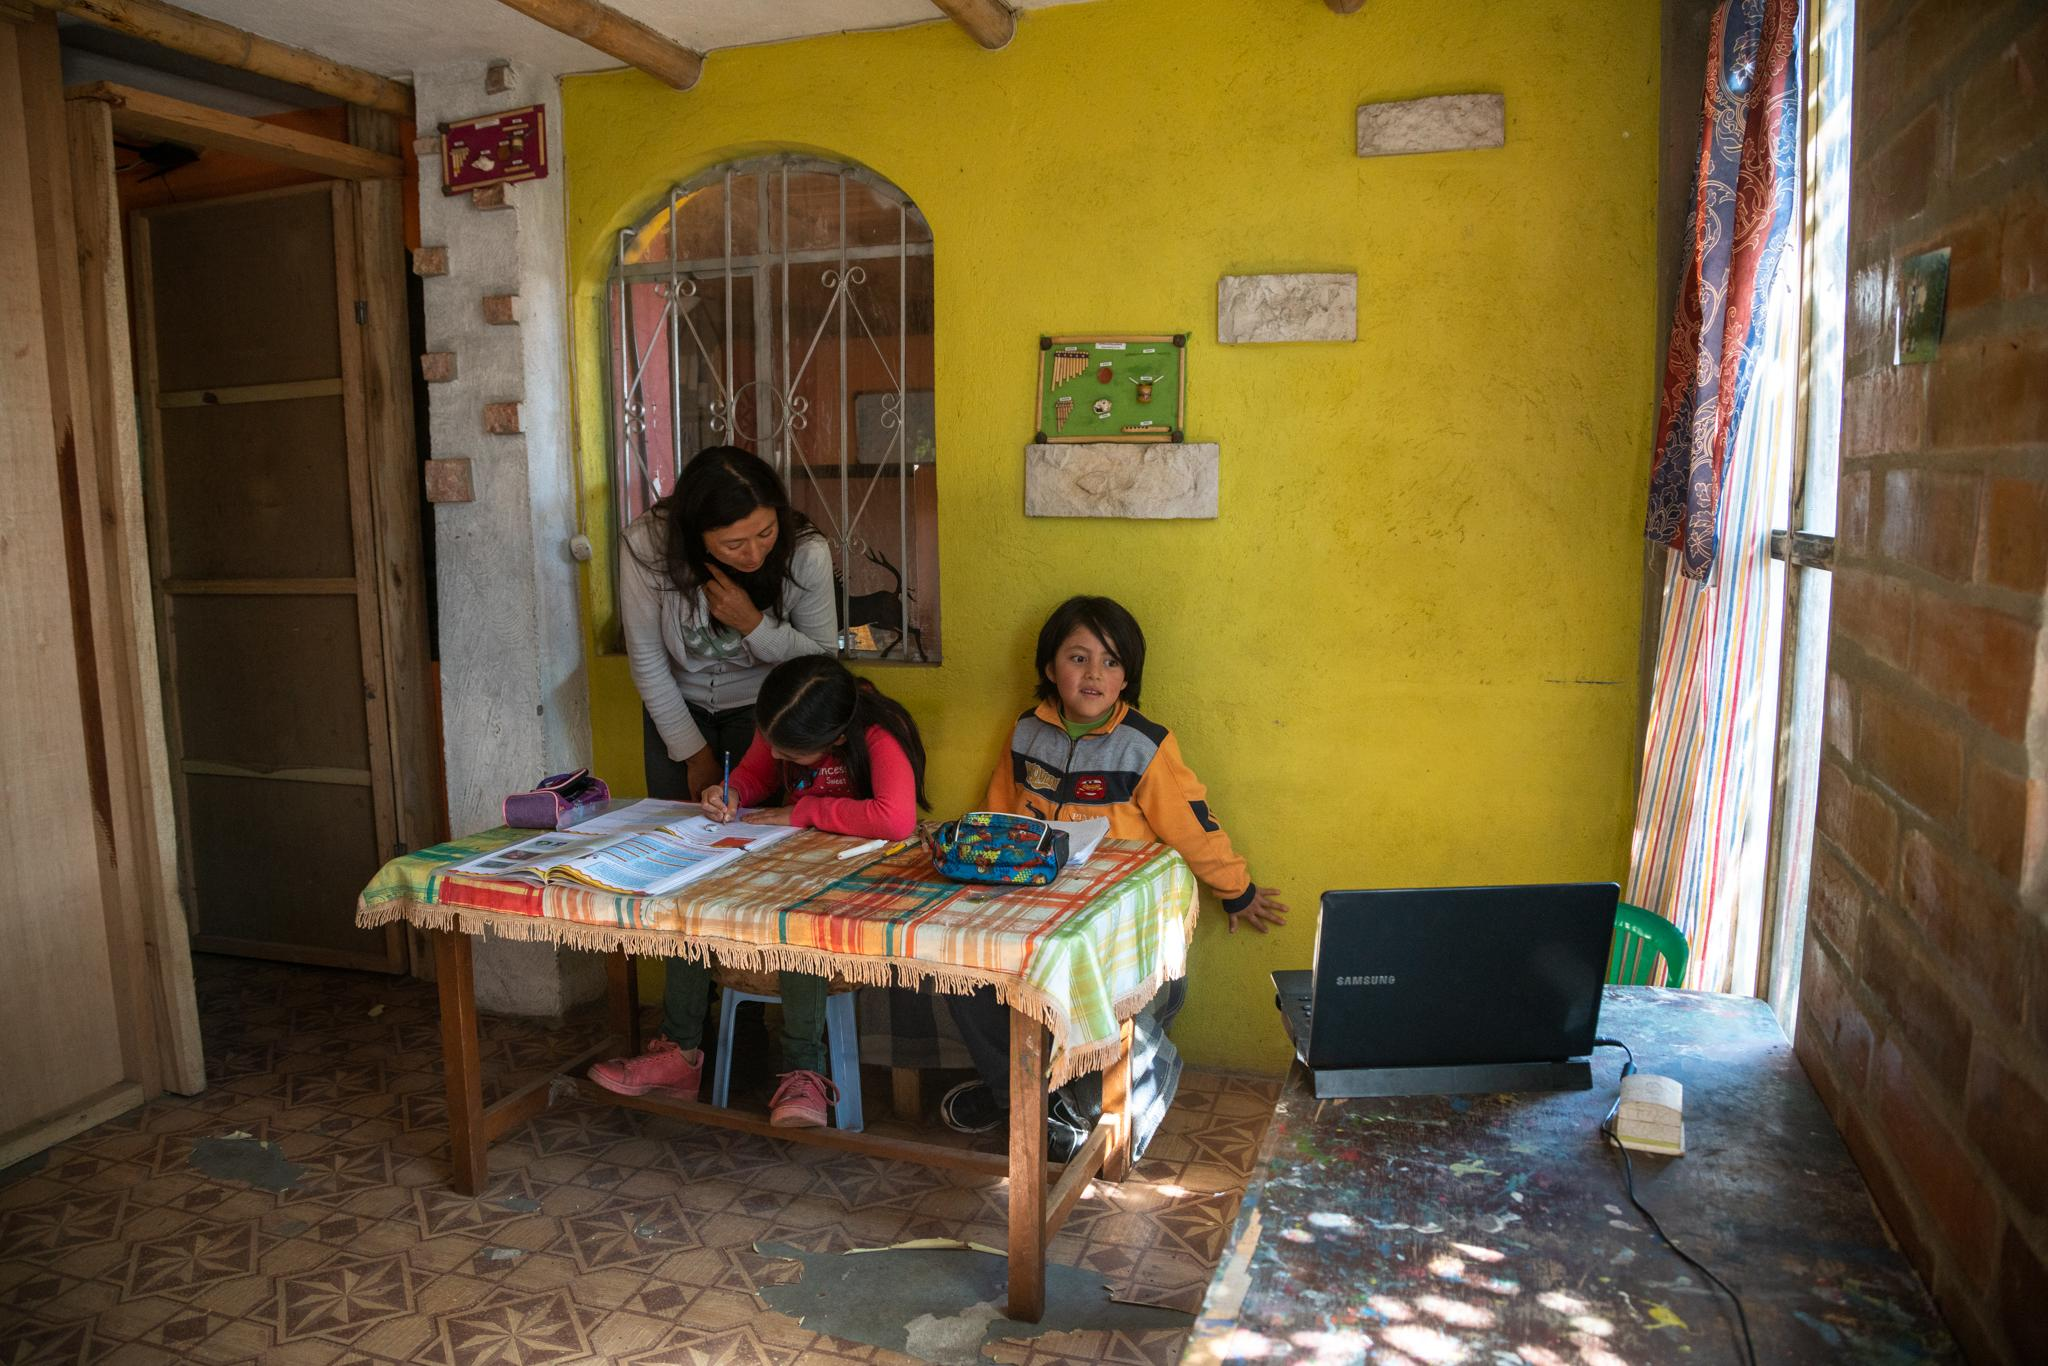 Dina Taco (39) helps her children Suri Laina Aguayo (10) and Jasid Taquiri Aguayo (7) to do their homework, they usually work from 9 to 11.30. They have a computer in which they make academic consultations and listen to music. Jasid Taquiri Aguayo (7) and Suri Laina Aguayo (10) are elementary school students of the Yachay Wasi Intercultural Bilingual Community School. Located south of Quito in Ecuador. They live with her sister Arelí (14), her mother Dina Taco (39) and her father Juan Andrés Aguayo (34). They live in a big house, their grandparents are their neighbors, and they have a big garden full of plants and some trees. Her parents say that at the beginning of the quarantine it was more fun for the children, but nowadays they miss going to school and sharing with their classmates. Dina, the mother, studies Infant Education at a distance, this has given her tools to closely accompany her children's studies during the confinement. She has created routines for children to make better use of time; at 8:30 they do exercises and dance in the patio, until 11:30 they do their homework, then they play and they also collaborate in certain household responsibilities. They are a family with limited financial resources, the Covid19 has left the two parents without work, however, they can lean on their grandparents. They are a family with a broad vision of social work. Photographer: Ana Maria Buitron. Quito, Ecuador. Dina Taco (39) ayuda a sus hijos Suri Laina Aguayo (10) y Jasid Taquiri Aguayo (7) a hacer los deberes de la escuela, suelen trabajar desde las 9 hasta las 11.30. Tienen un computador en el cual hacen consultas académicas y escuchan música. Jasid Taquiri Aguayo (7) y Suri Laina Aguayo (10) son estudiantes de primaria de la Escuela Comunitaria Intercultural Bilingüe Yachay Wasi. Ubicada al sur de Quito en Ecuador. Viven con su hermana Arelí (14), su madre Dina Taco (39) y su padre Juan Andrés Aguayo (34). Viven en una casa grande, sus abuelos son s